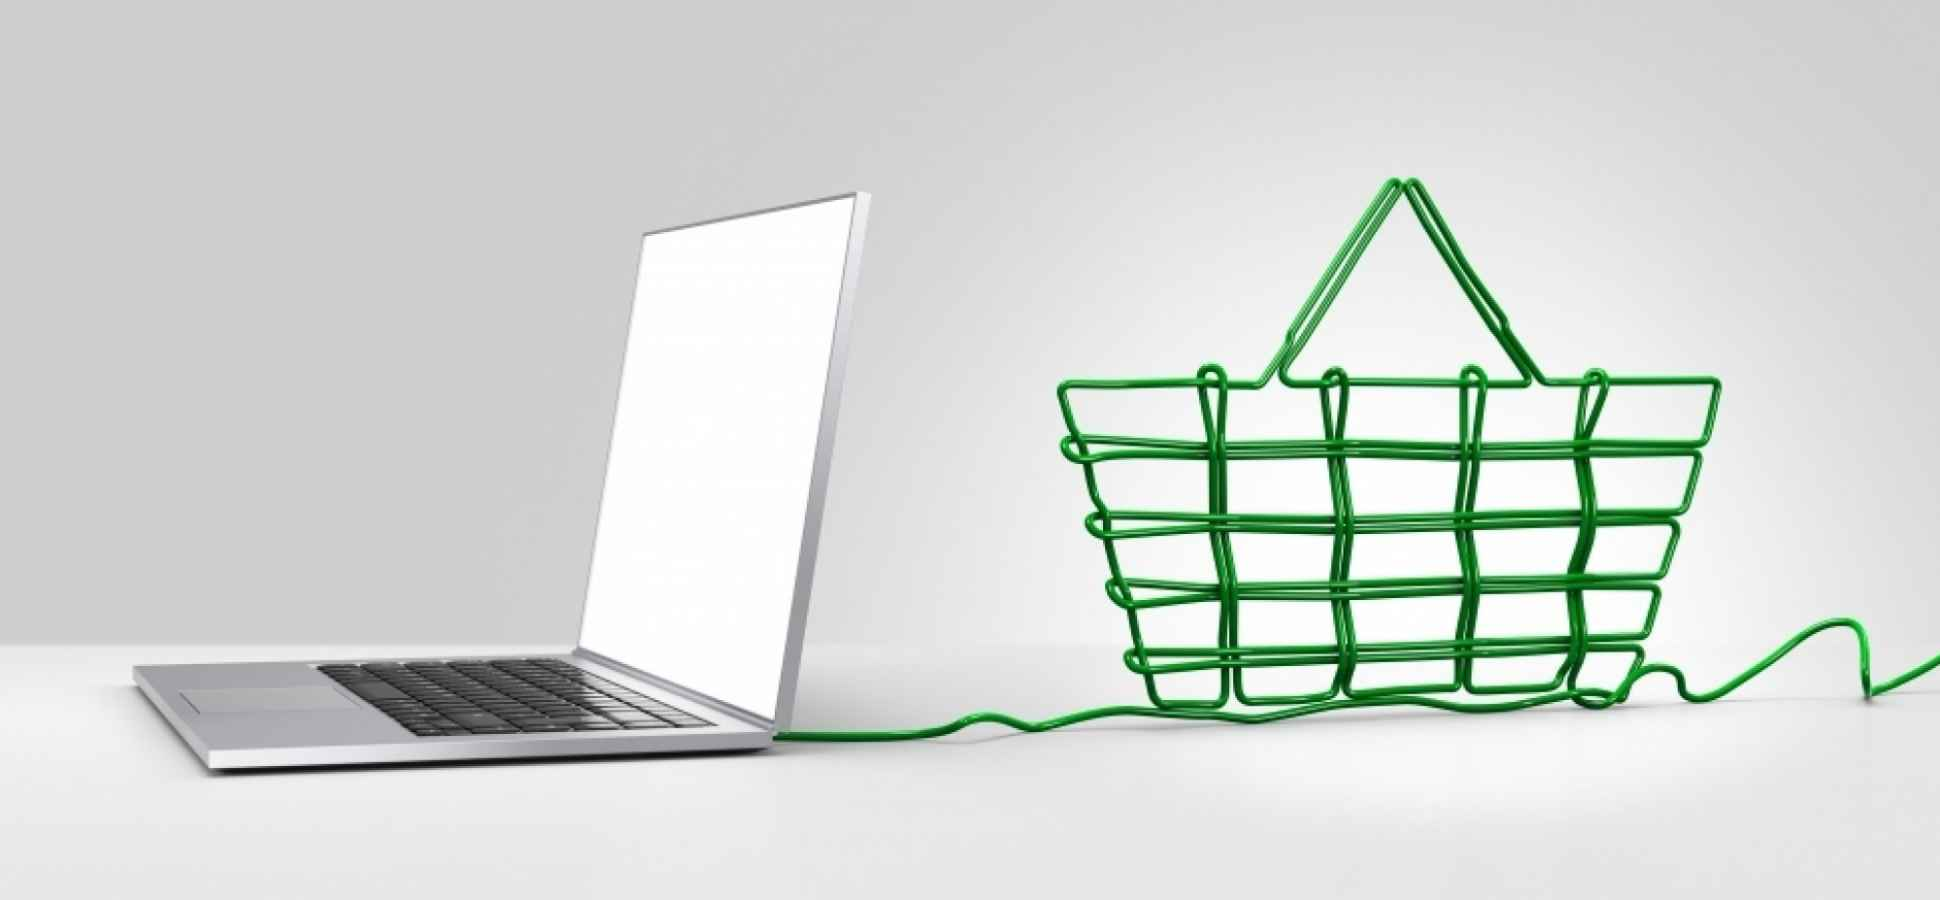 E-Commerce Might Be Hyped But For Some, It Is Still Hot | Inc.com